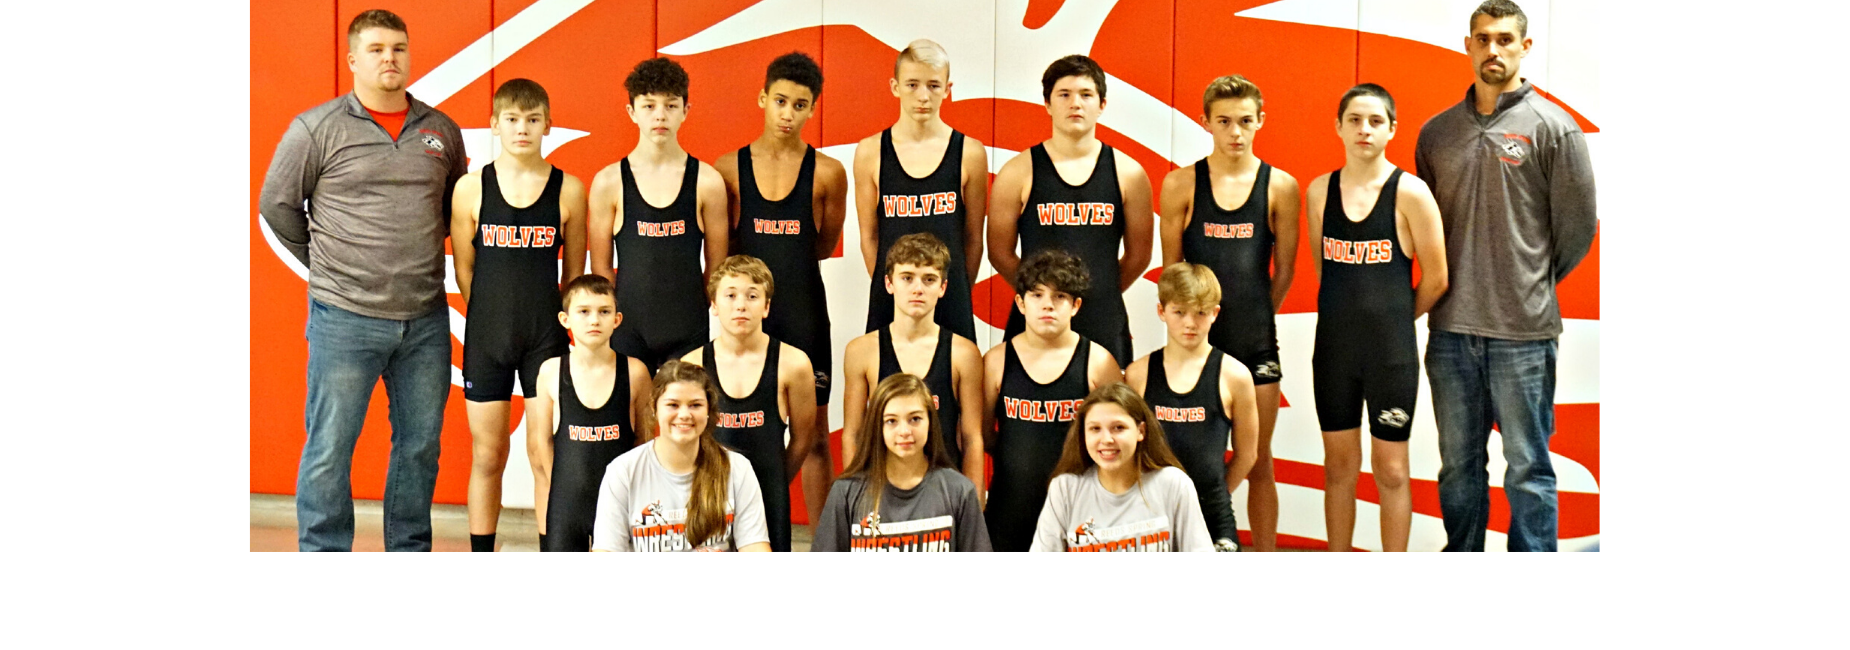 picture of RSMS wrestling team